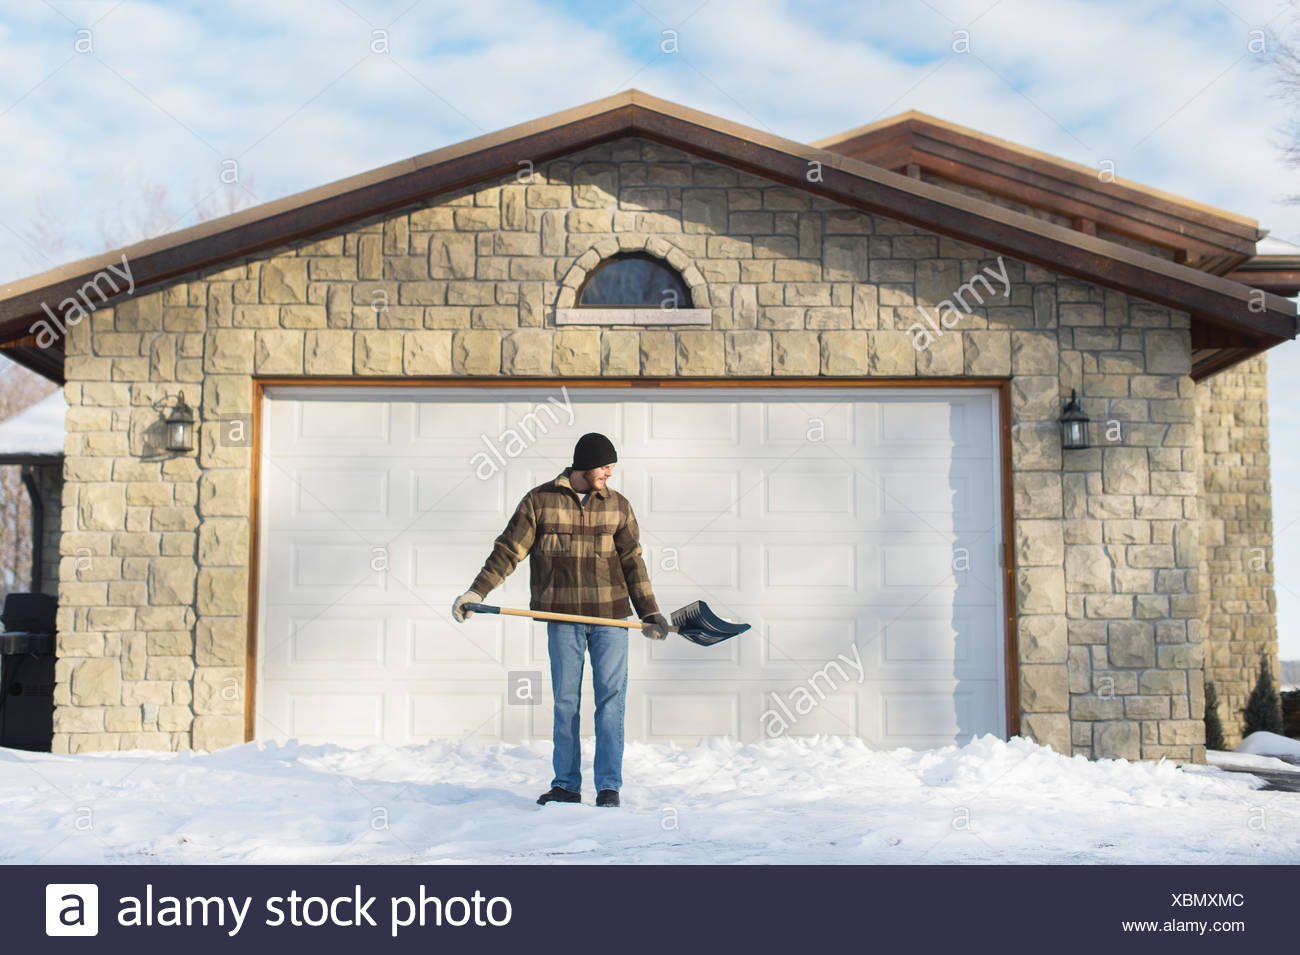 Man shoveling snow, Young's Point, Ontario, Canada - Stock Image